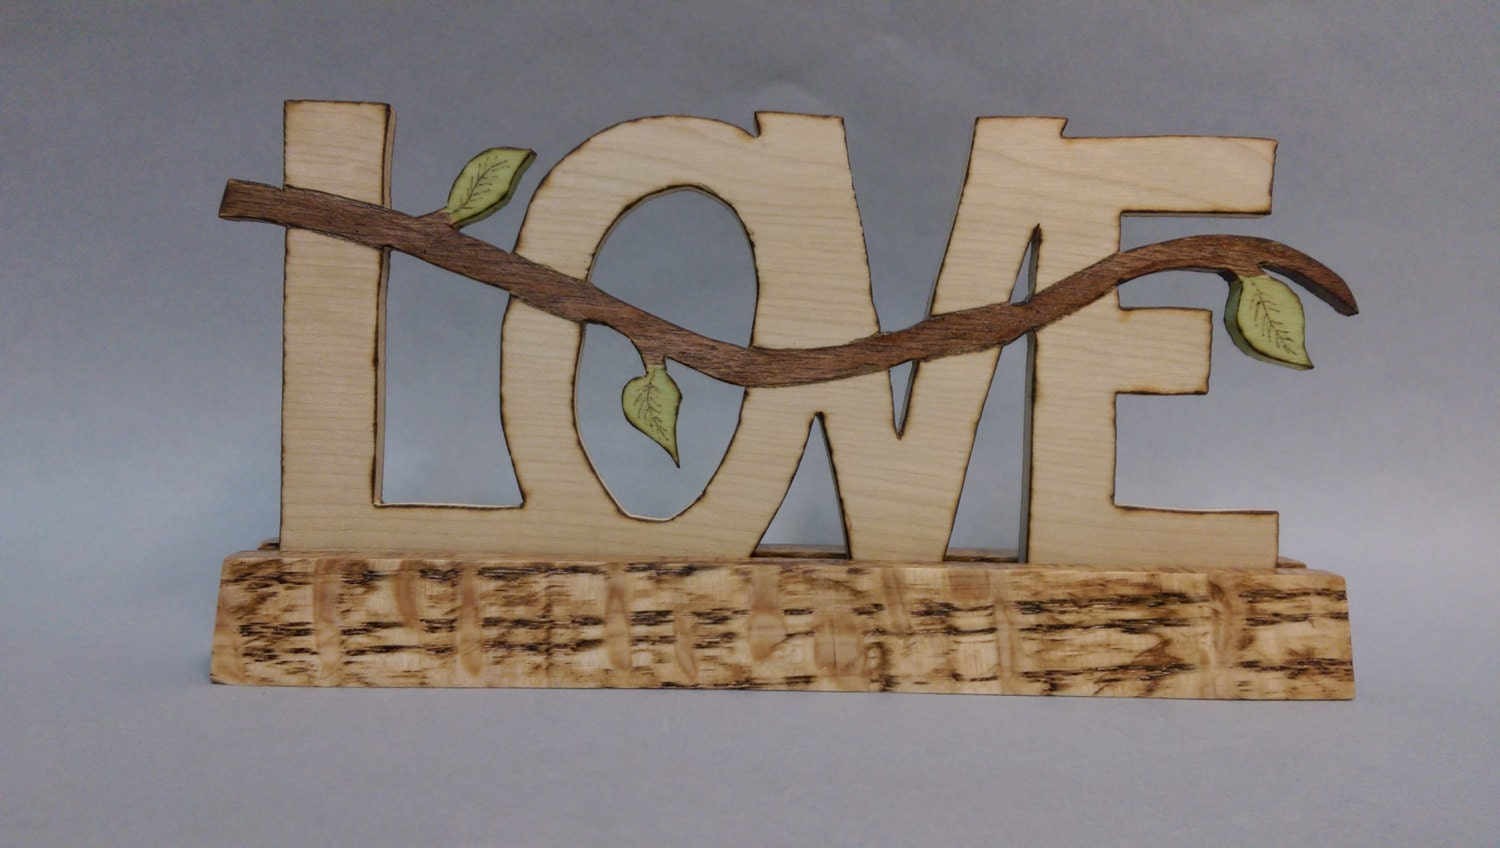 Very Impressive portraiture of Love wooden sign with stand scroll saw by cordrickcreations with #63462F color and 1500x848 pixels